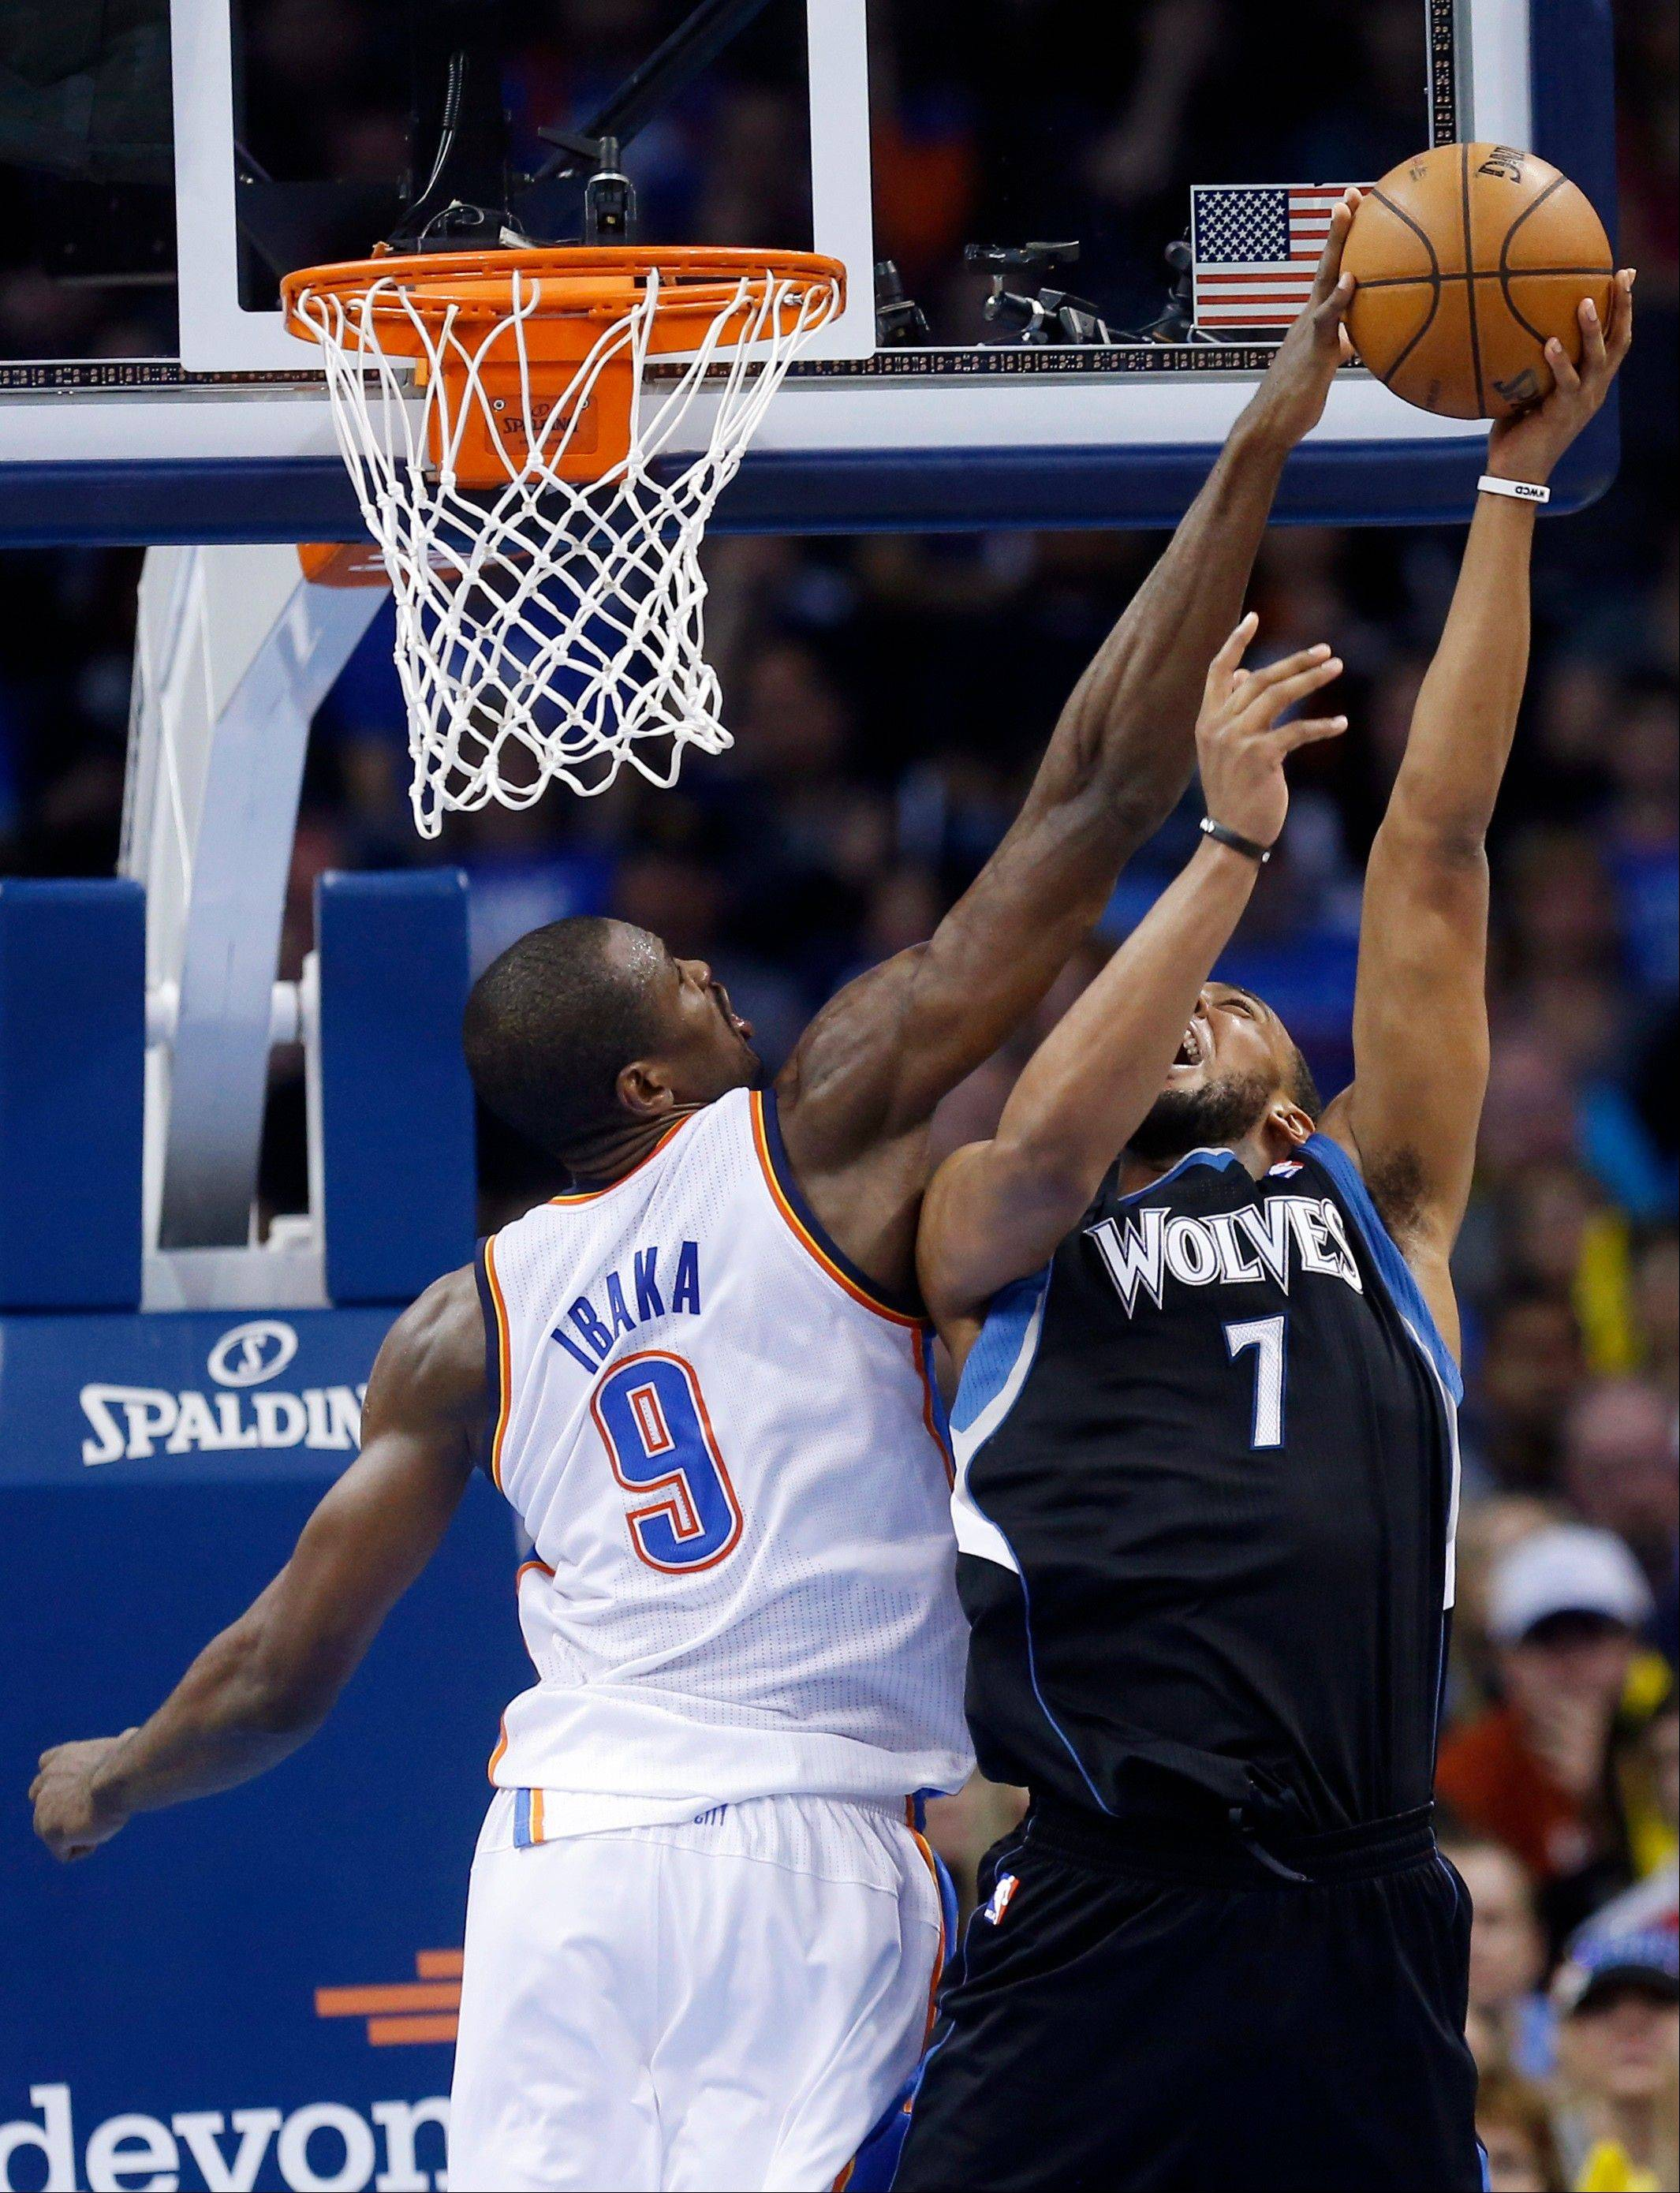 Oklahoma City Thunder forward Serge Ibaka (9) blocks a shot by Minnesota Timberwolves forward Derrick Williams (7) in the third quarter of an NBA basketball game in Oklahoma City, Wednesday, Jan. 9, 2013. Oklahoma City won 106-84.